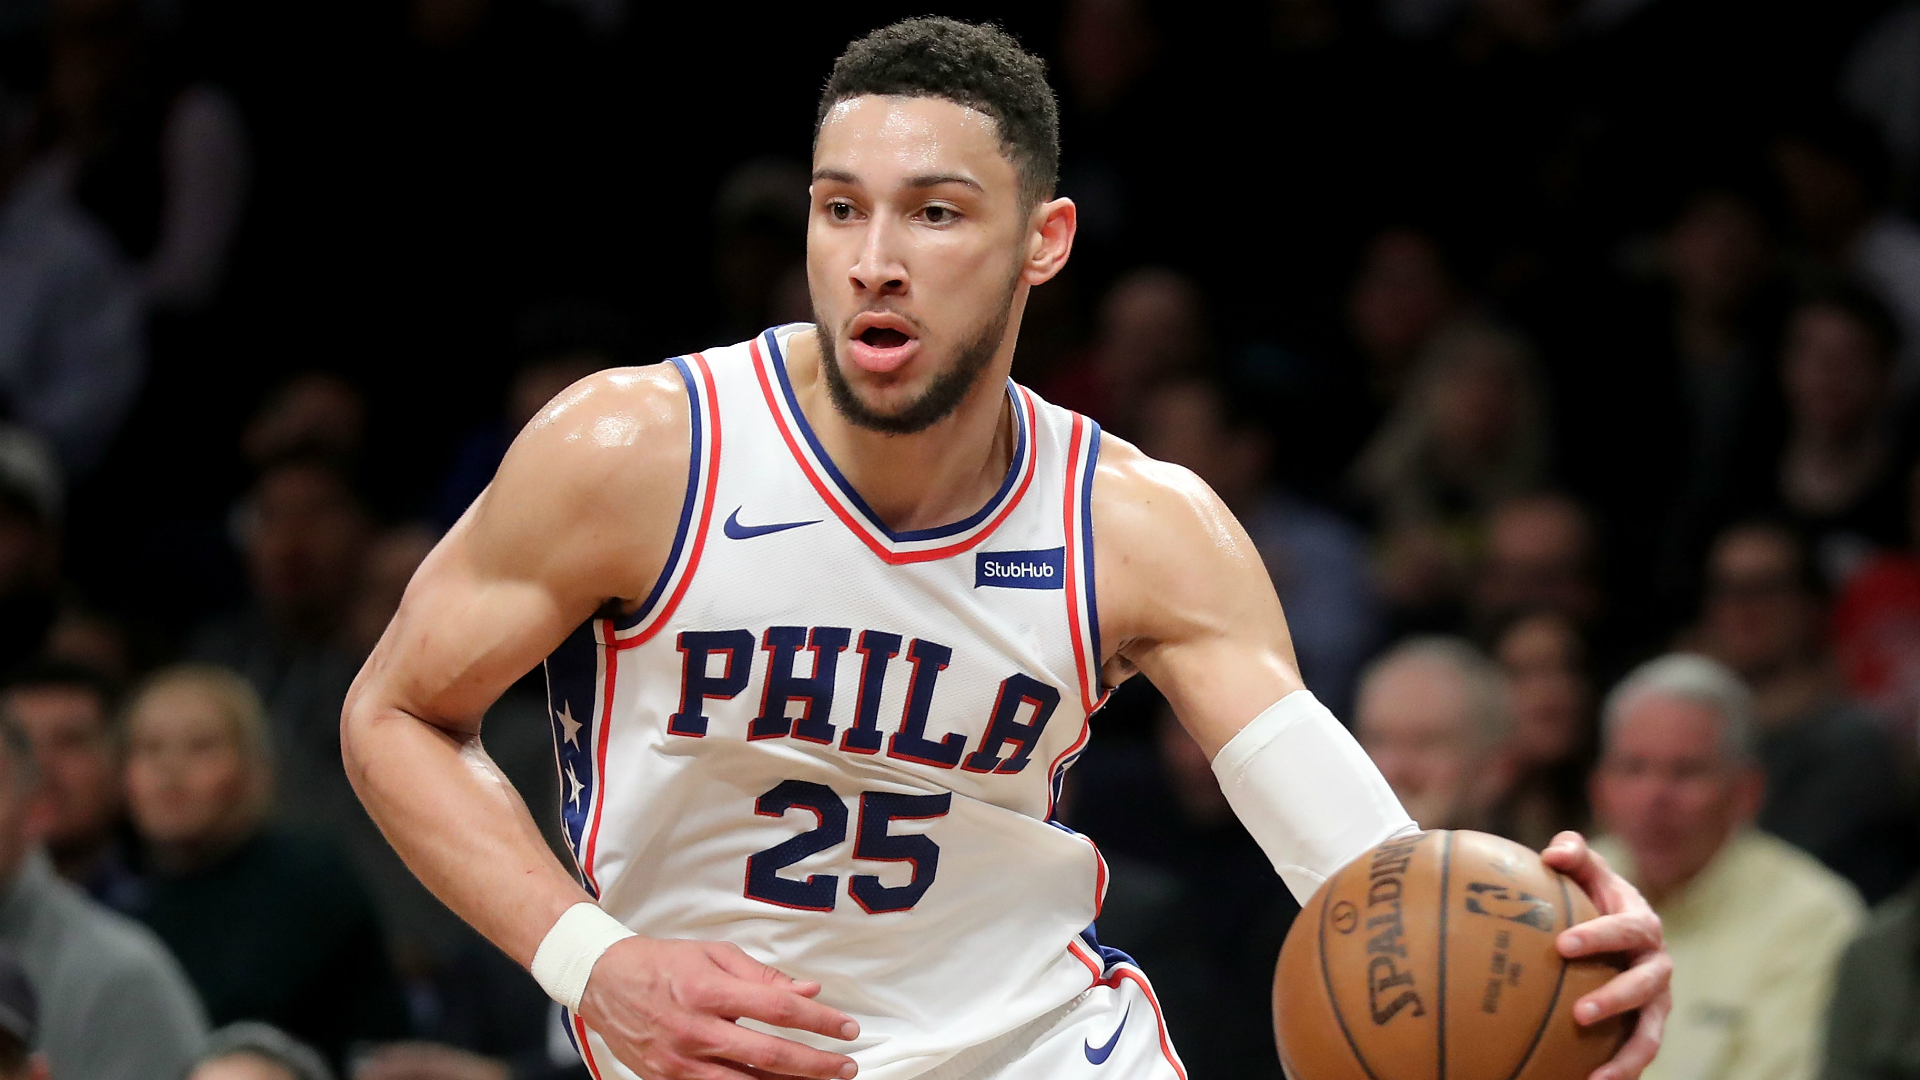 Watch: Ben Simmons shows off dribbling skills — with his feet - FOOTBALL News - Stadium AstroWatch: Ben Simmons shows off dribbling skills — with his feet - FOOTBALL News - Stadium Astro - 웹